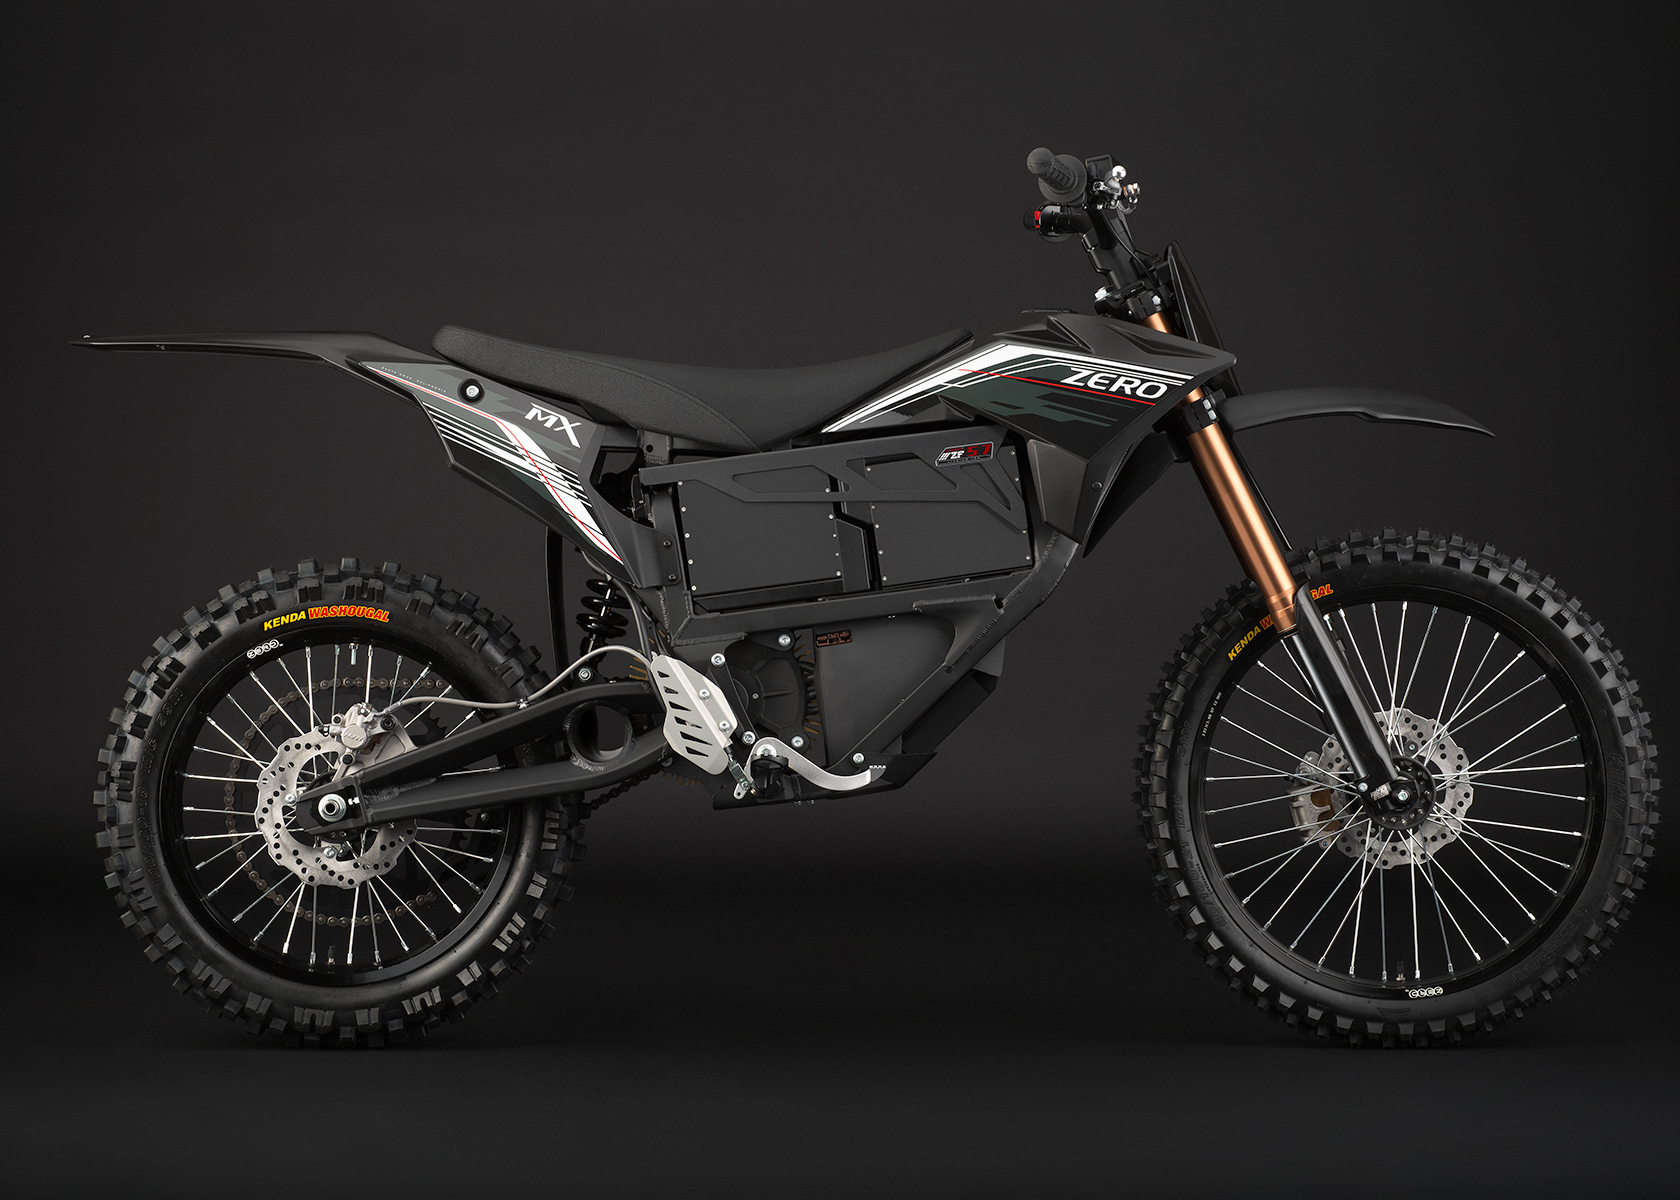 2013 Zero MX Electric Motorcycle: Black Profile Right